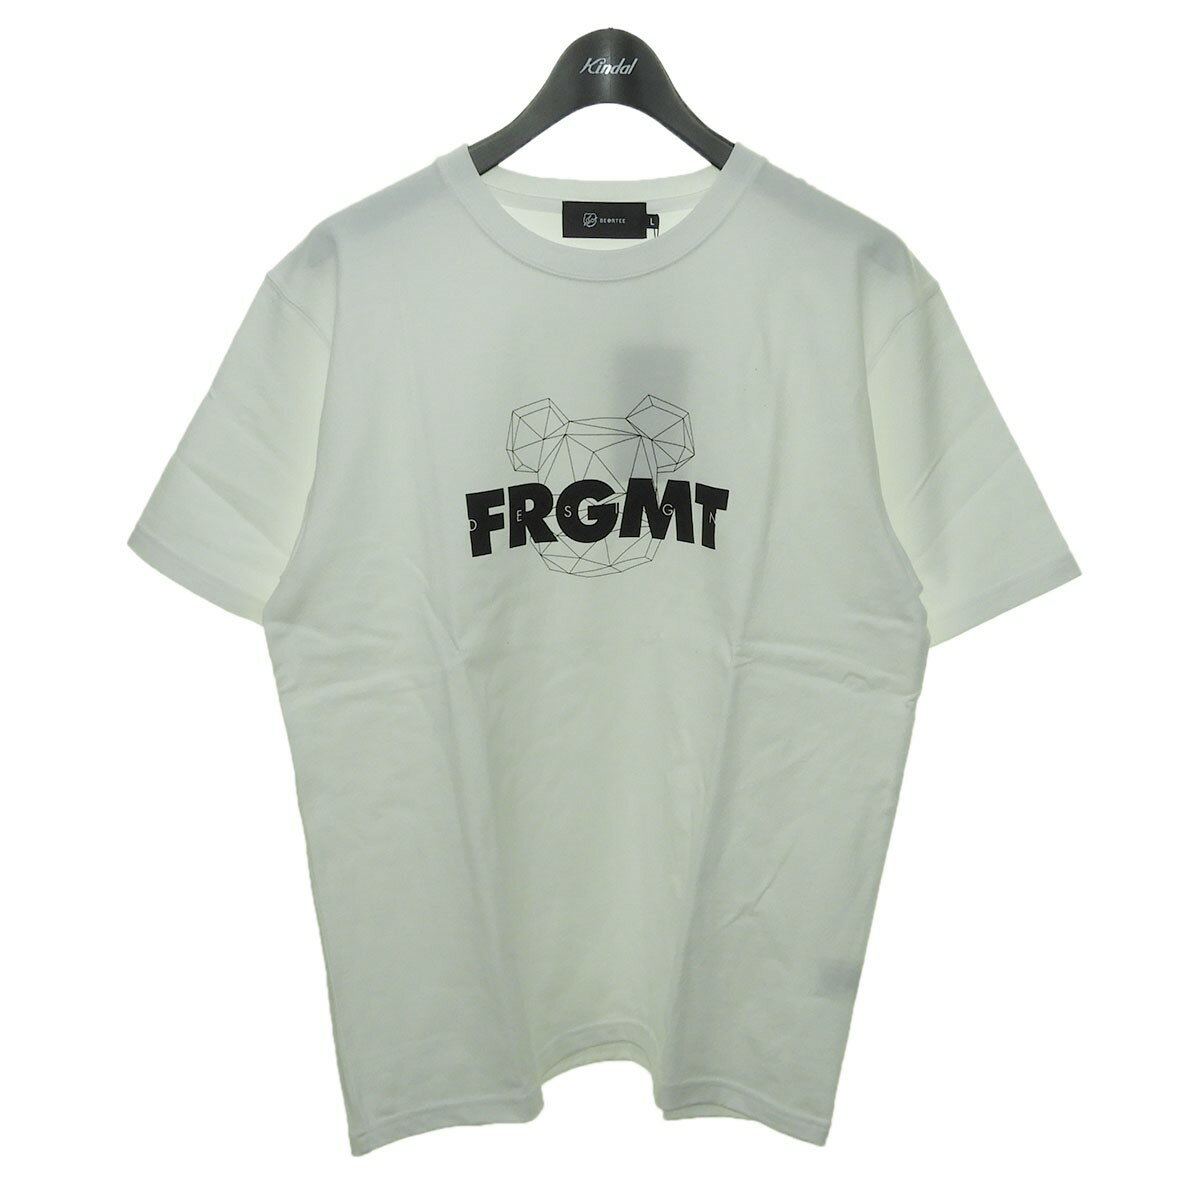 トップス, Tシャツ・カットソー FRAGMENT DESIGN BEARBRICK MEDICOM TOY T L 200221